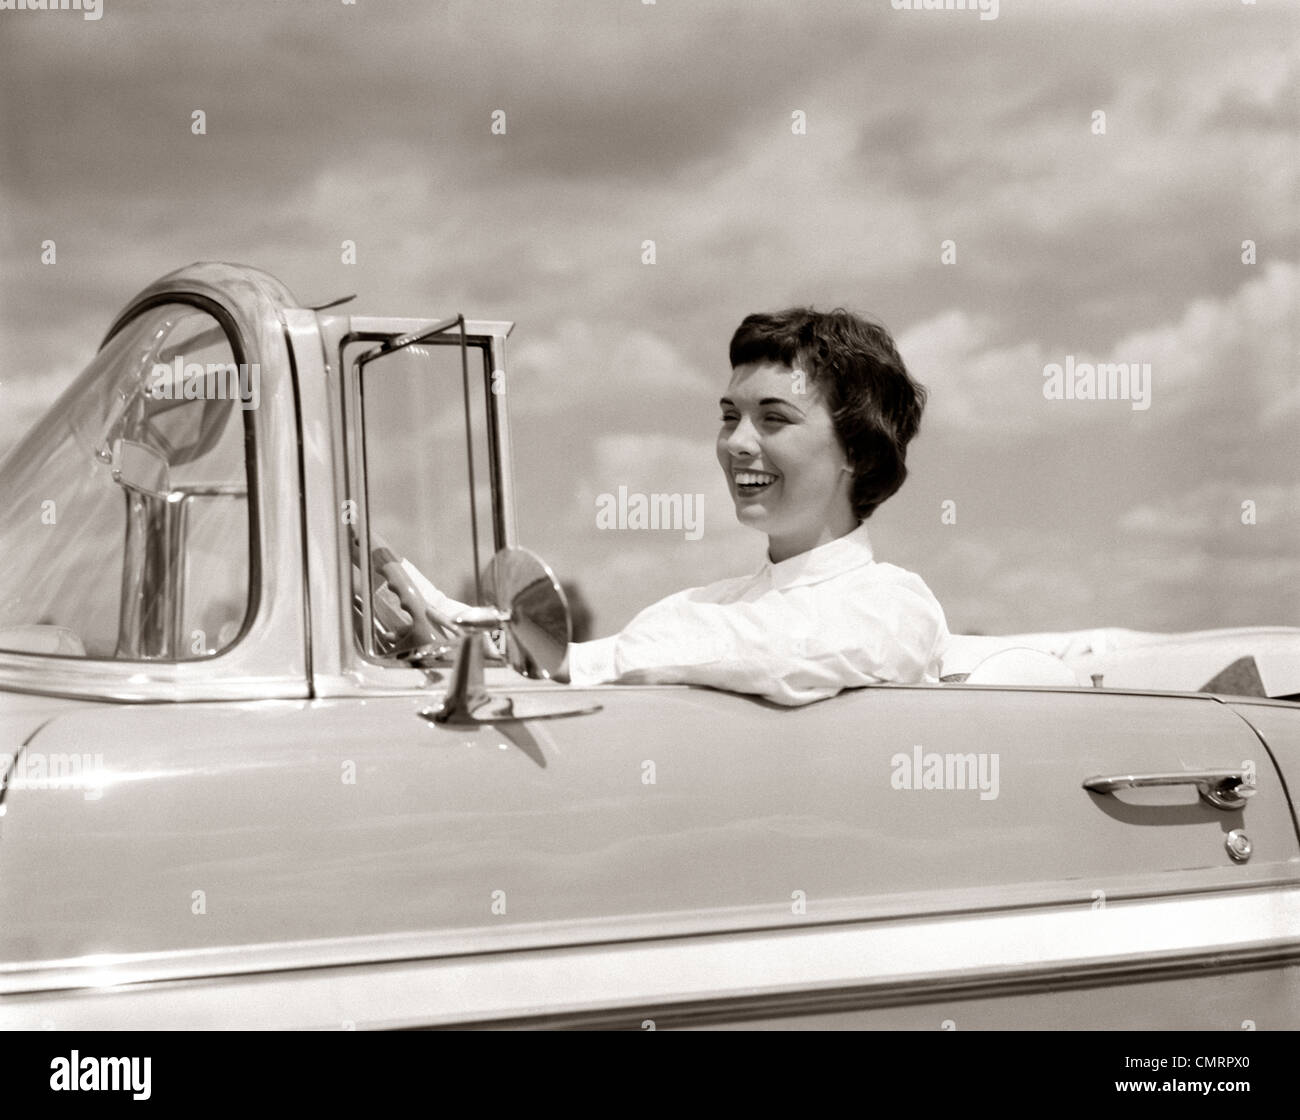 1950 SMILING WOMAN DRIVING AUTOMOBILE cabriolet Chevrolet Photo Stock